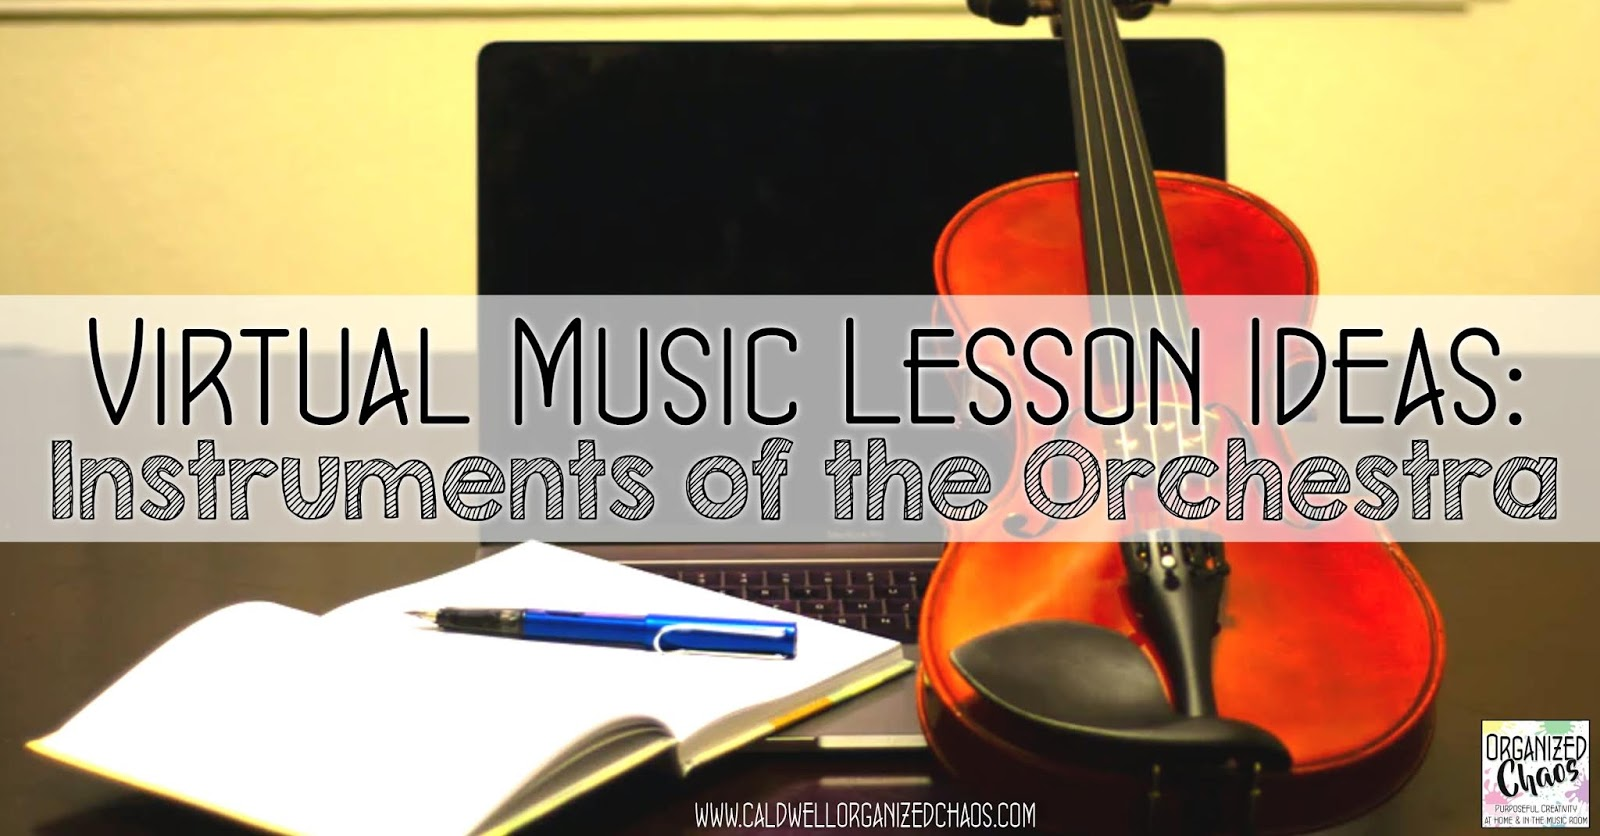 Virtual Music Lesson Ideas Instruments Of The Orchestra Organized Chaos